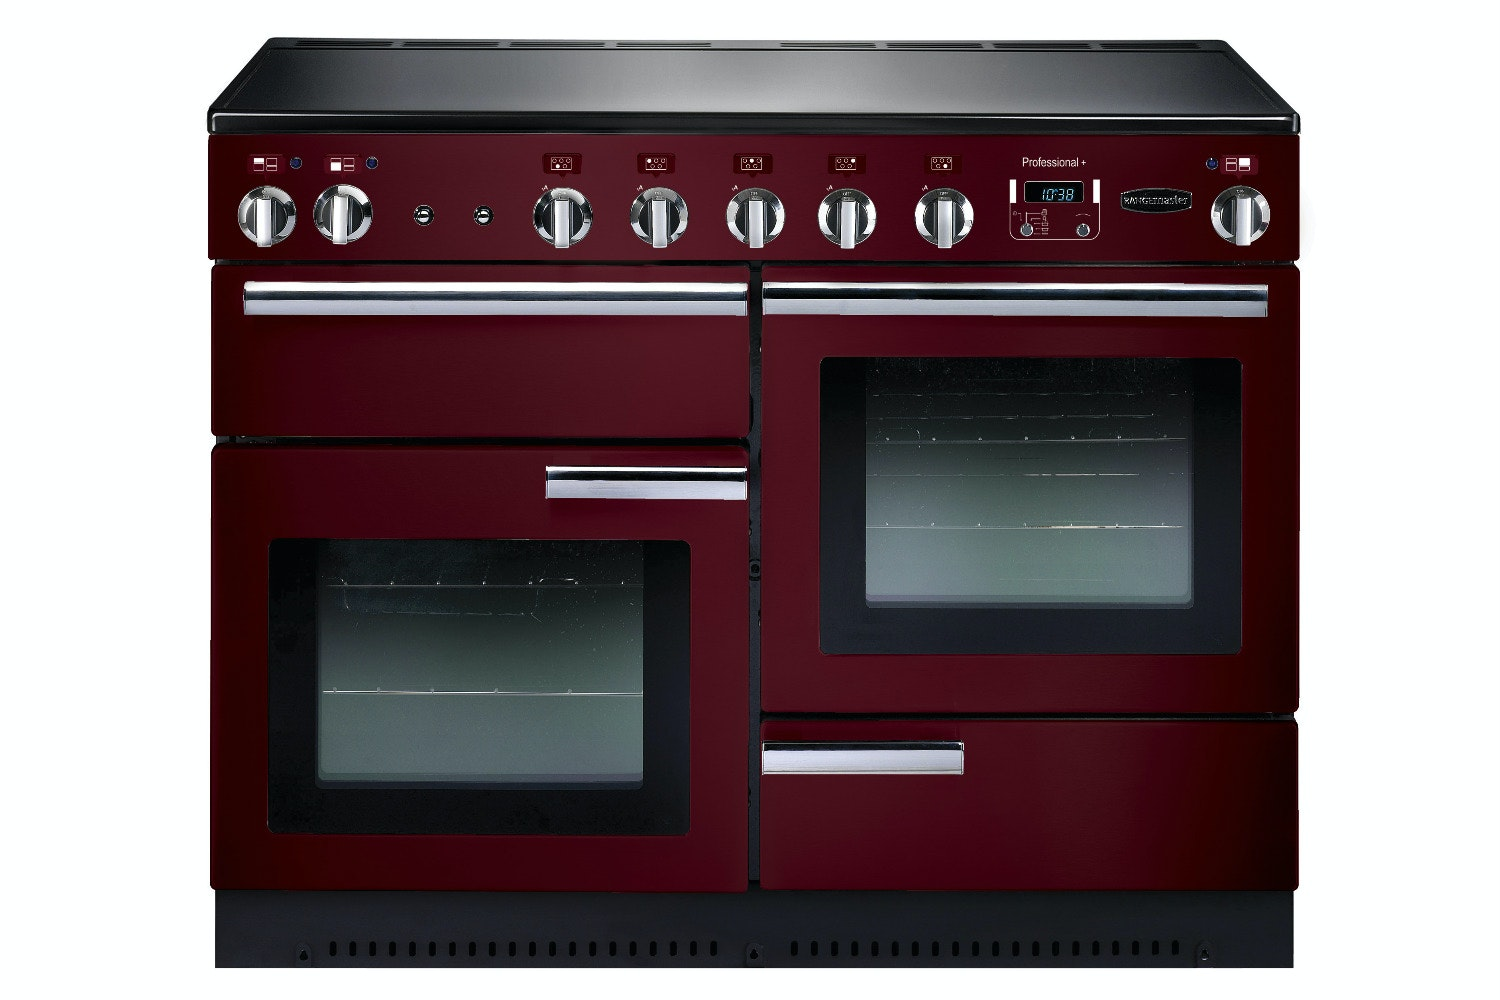 Rangemaster Pro Plus 110cm Electric Range Cooker | PROP110EICY/C | Cranberry